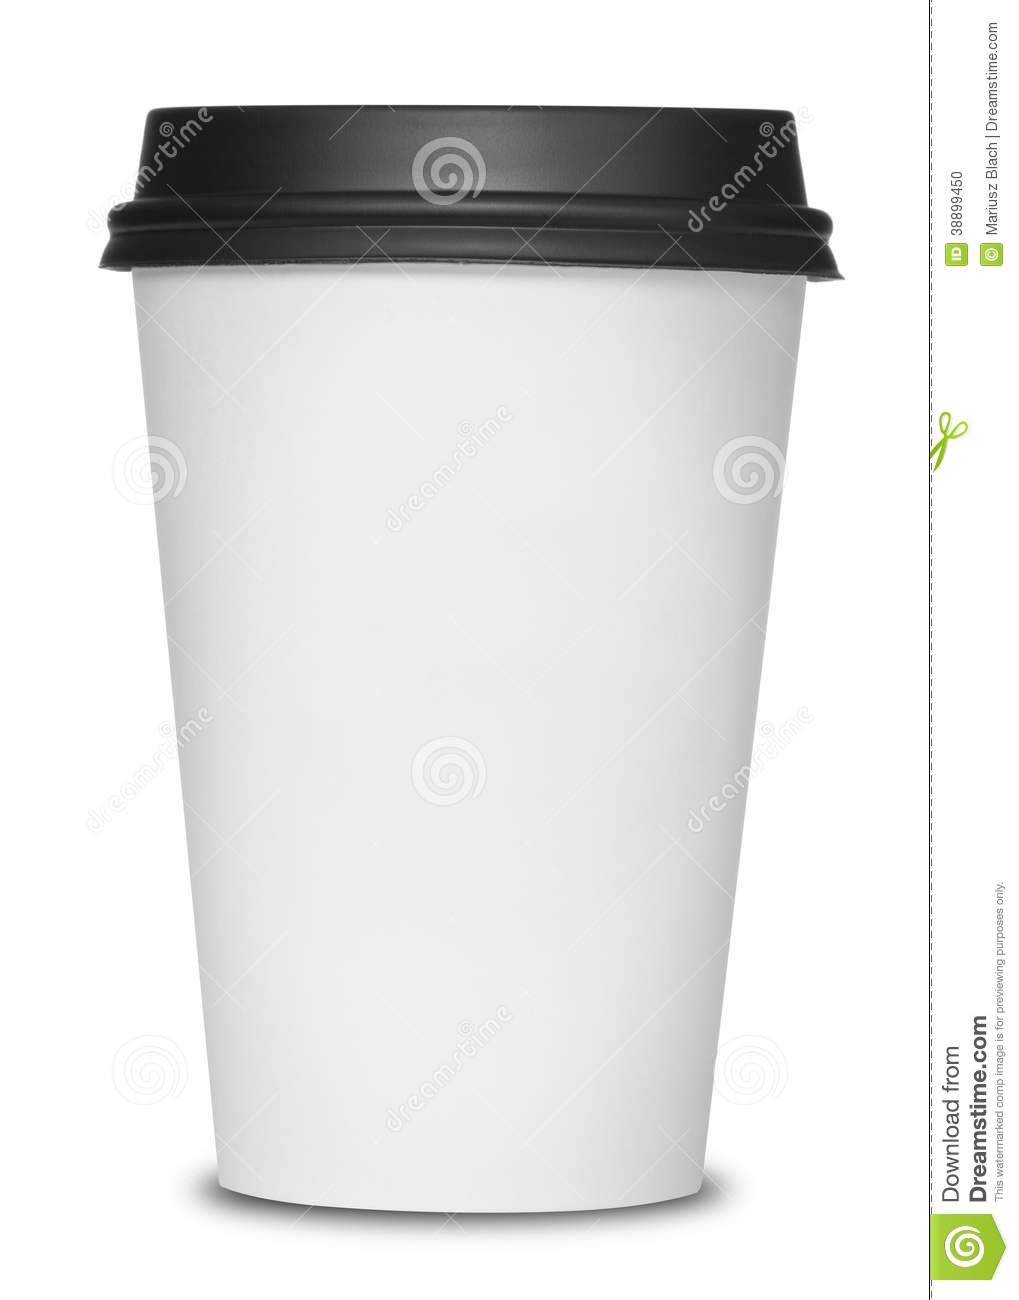 Paper coffee cup with black lid isolated on white background.